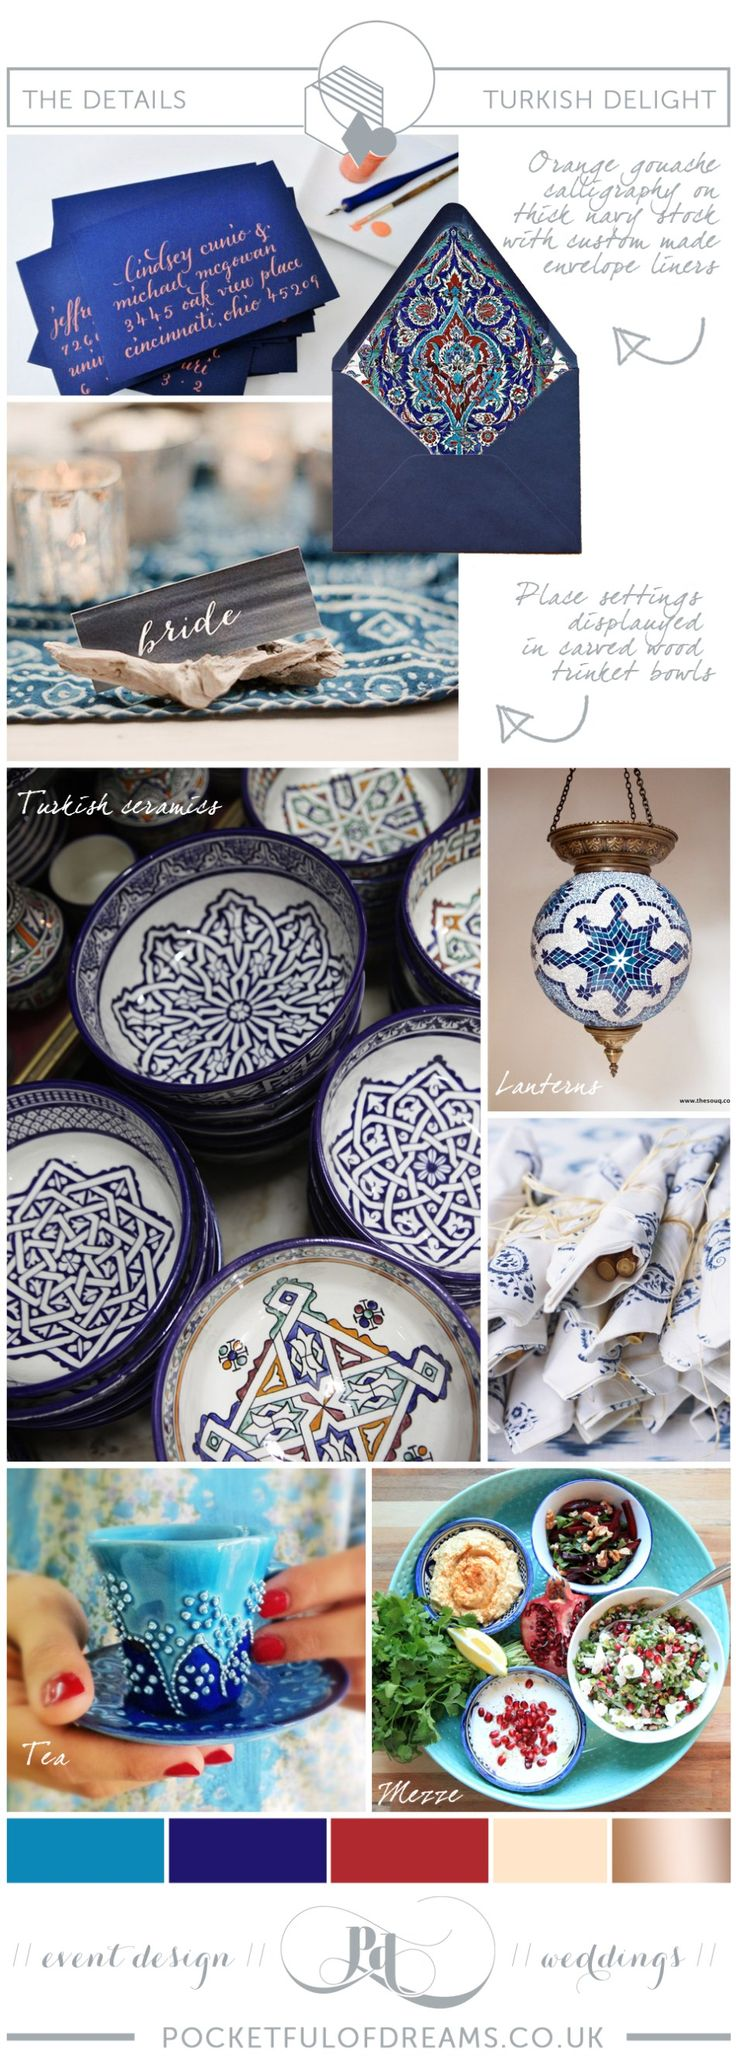 Bridal Inspiration Boards #73 ~ Turkish Delight